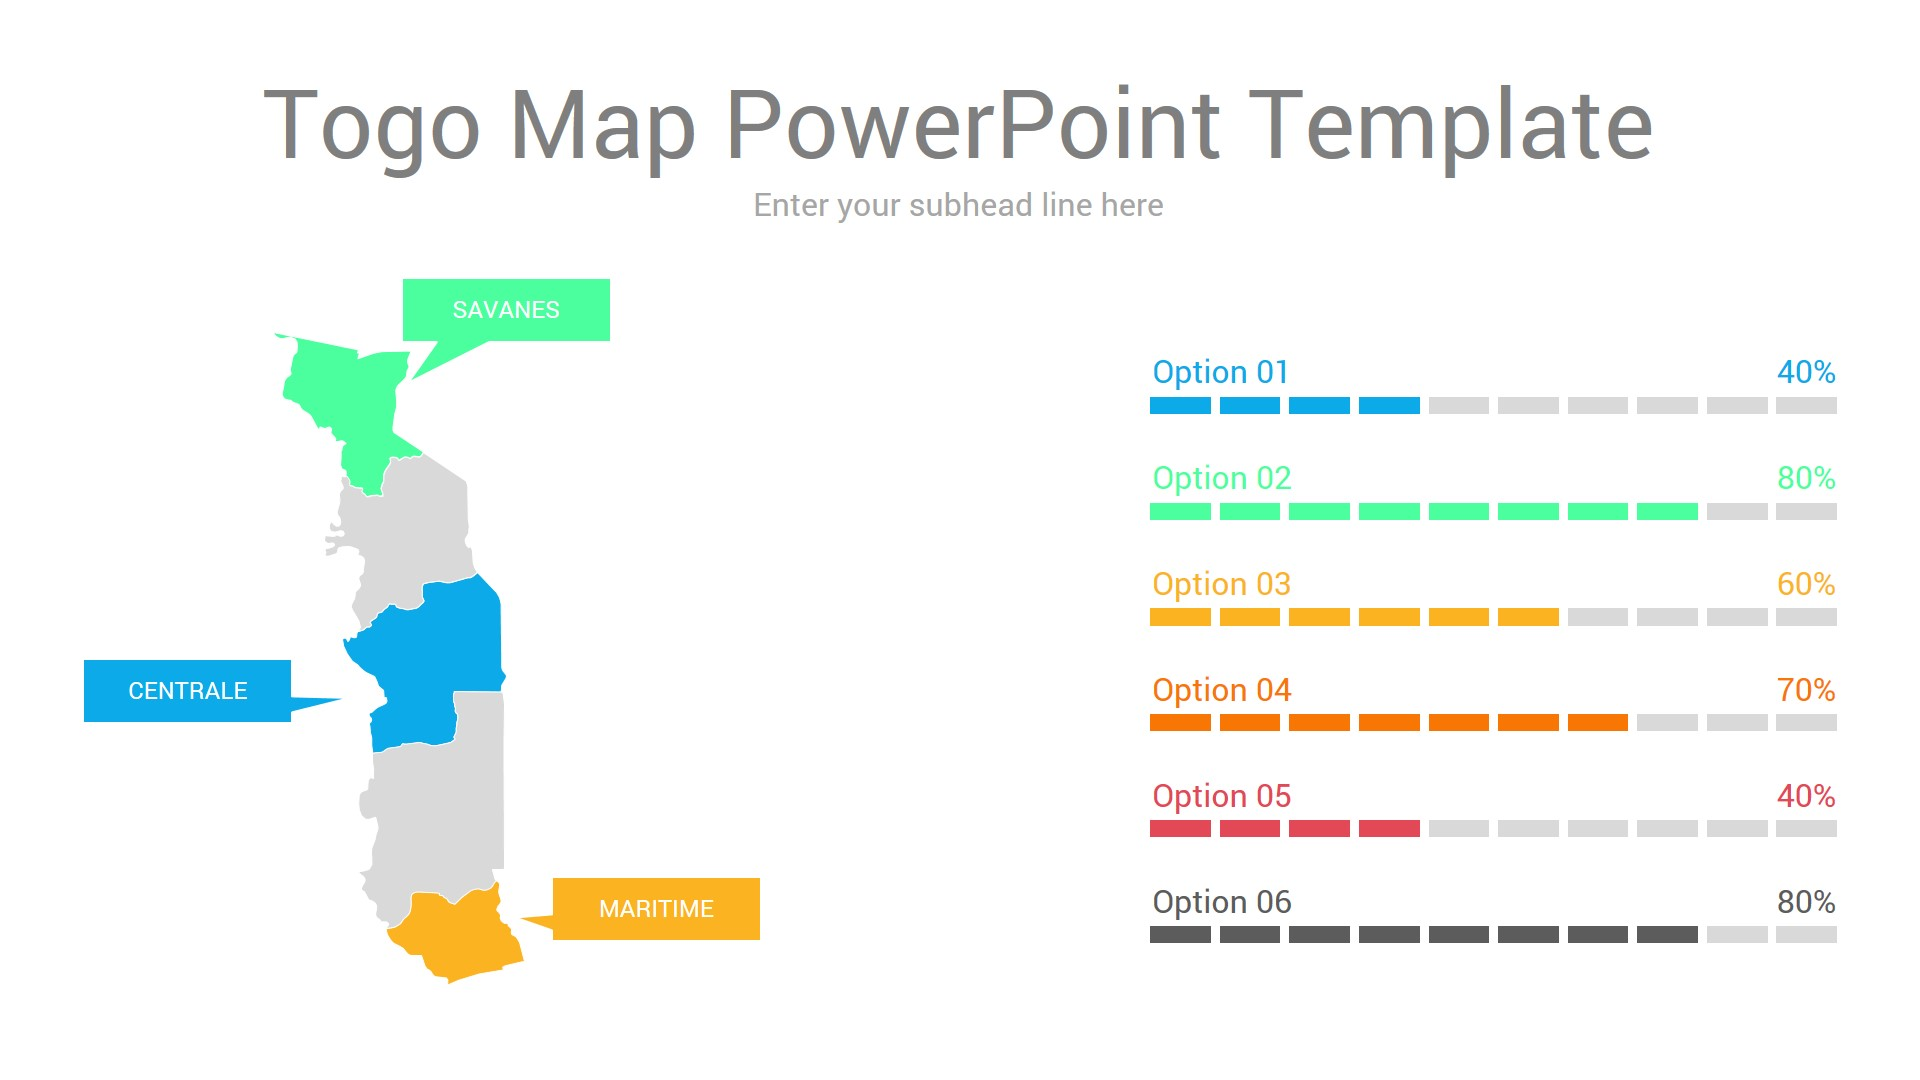 Togo map powerpoint template